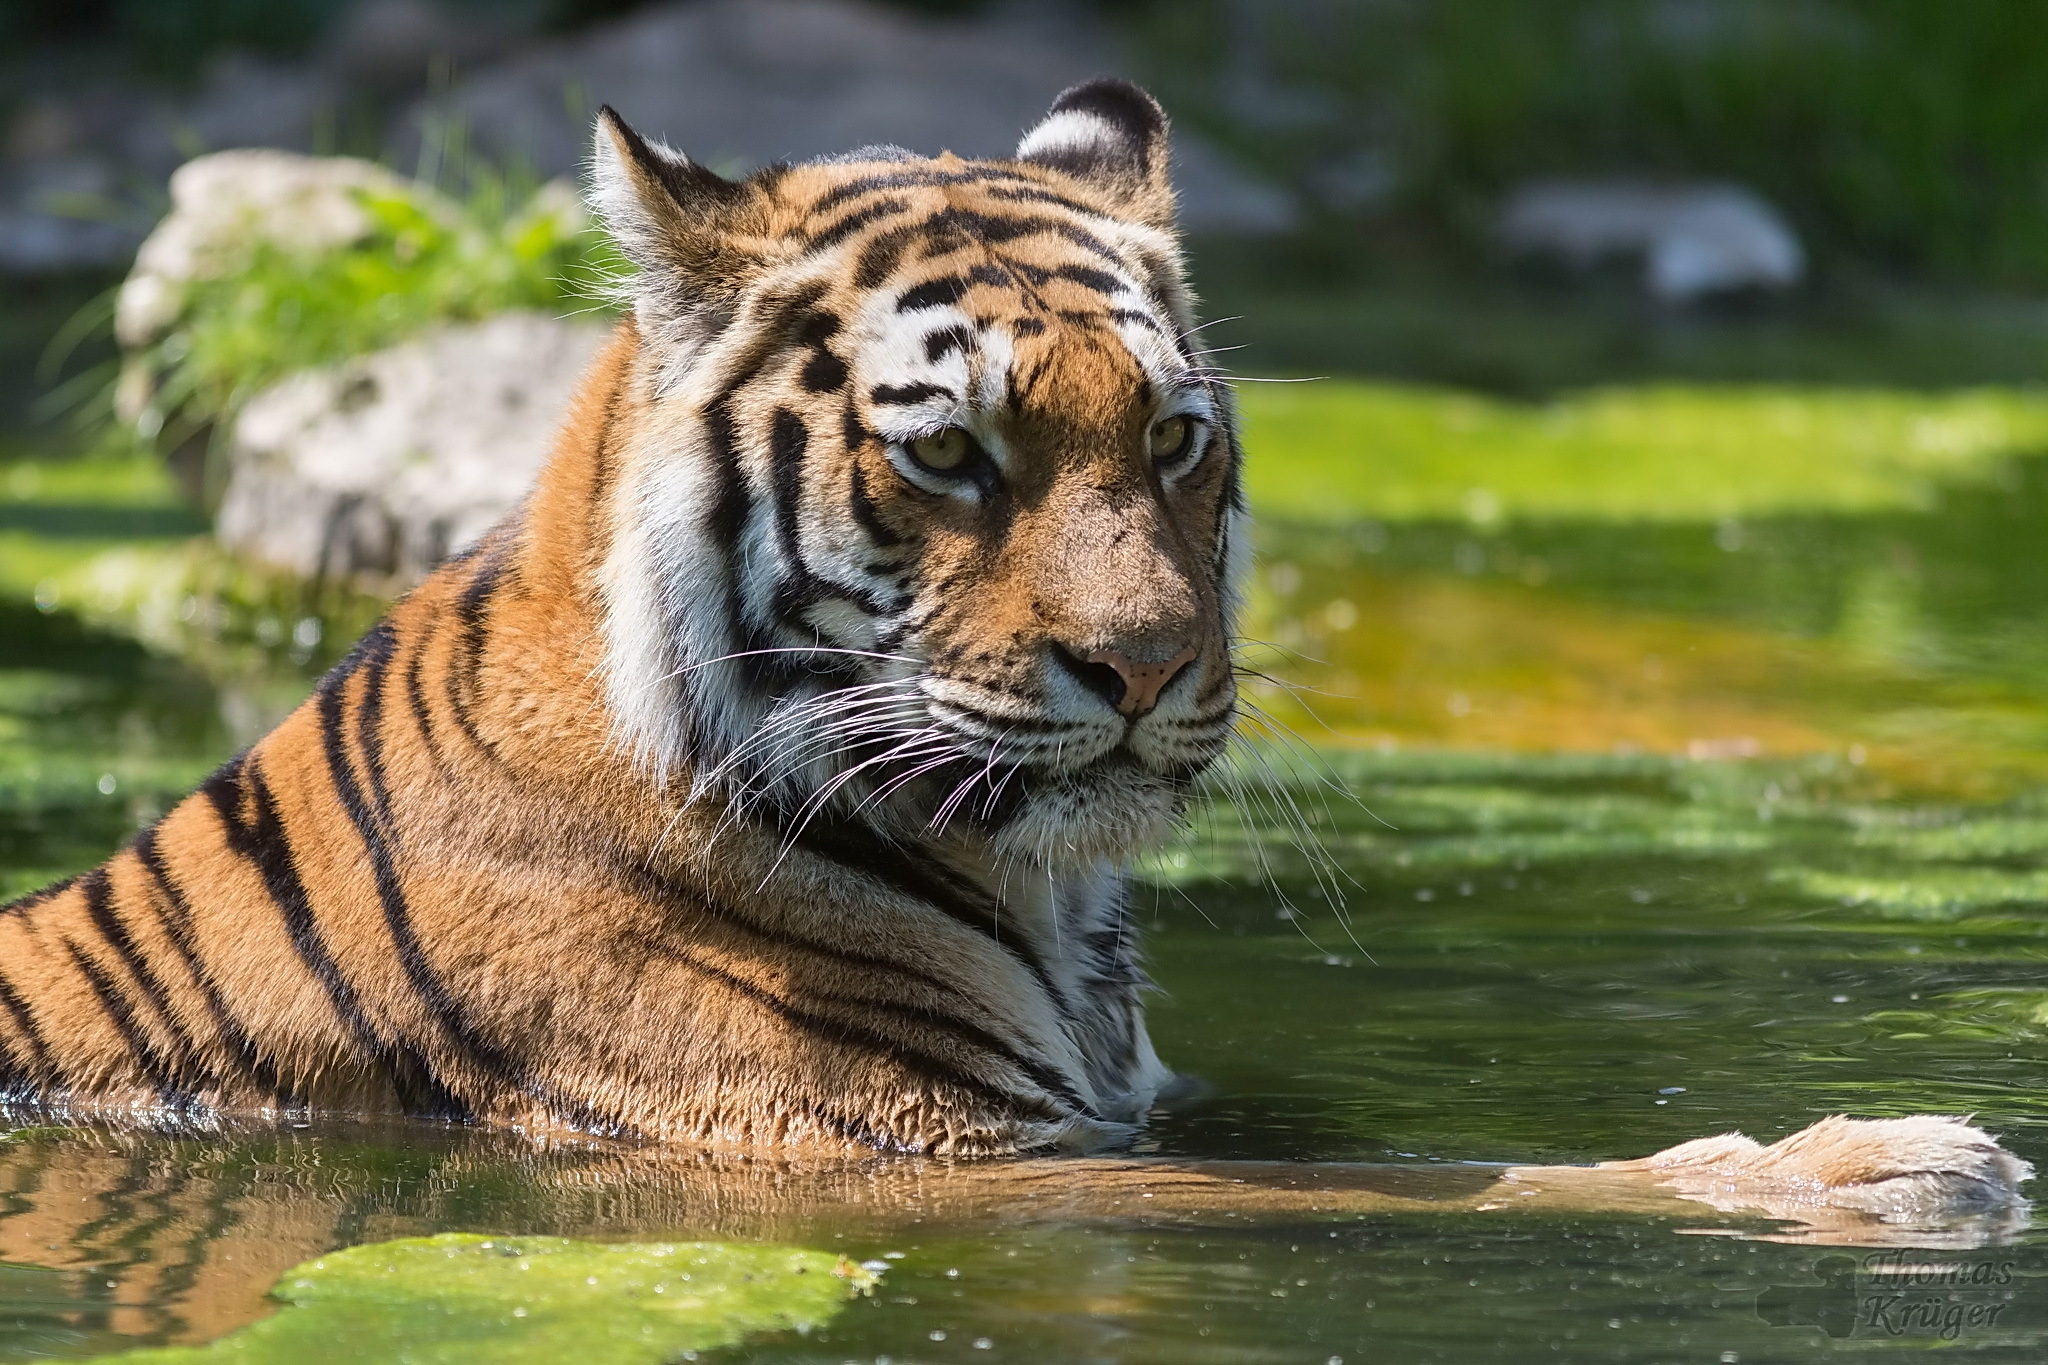 148803 download wallpaper Water, Animals, Predator, Tiger, To Swim, Swim screensavers and pictures for free